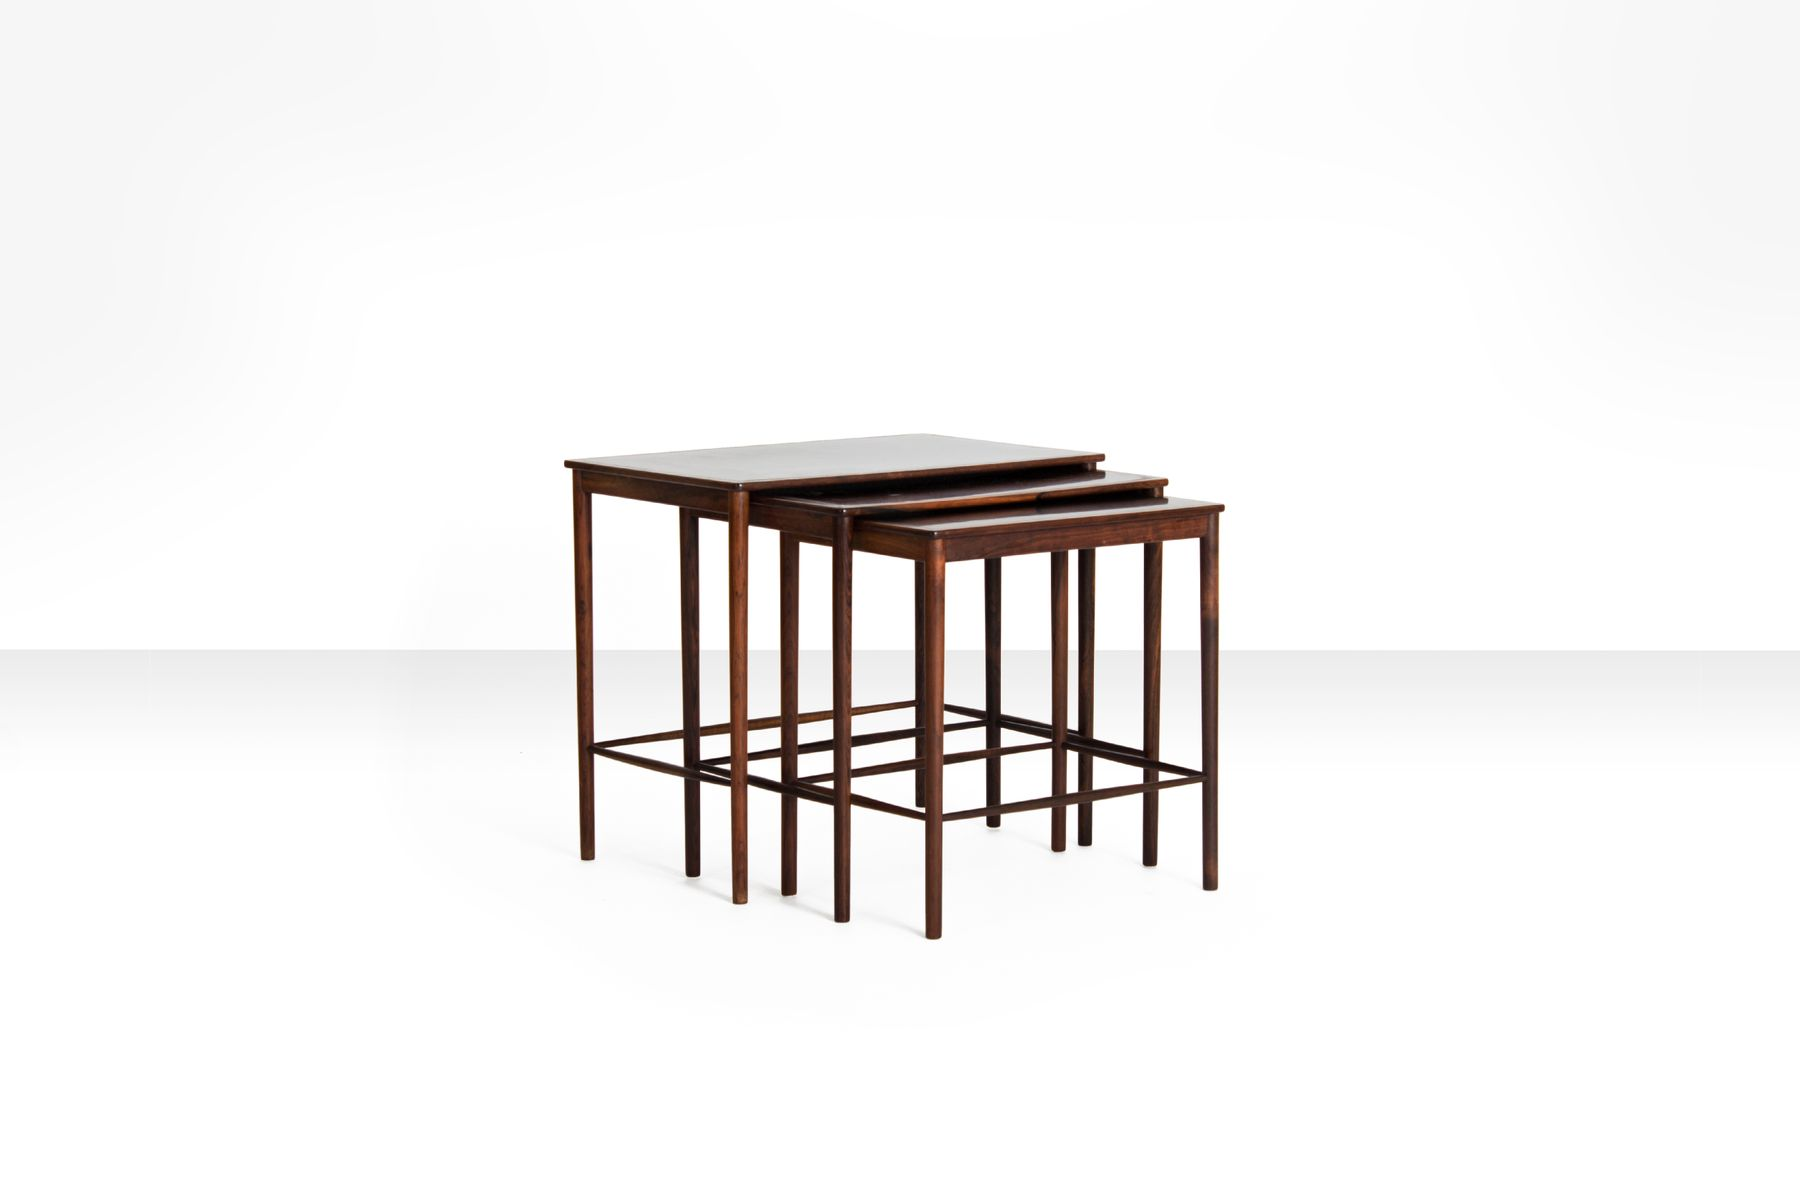 High Quality Rosewood Nesting Tables By Grete Jalk For Poul Jeppesens Møbelfabrik, 1960s  For Sale At Pamono Amazing Ideas